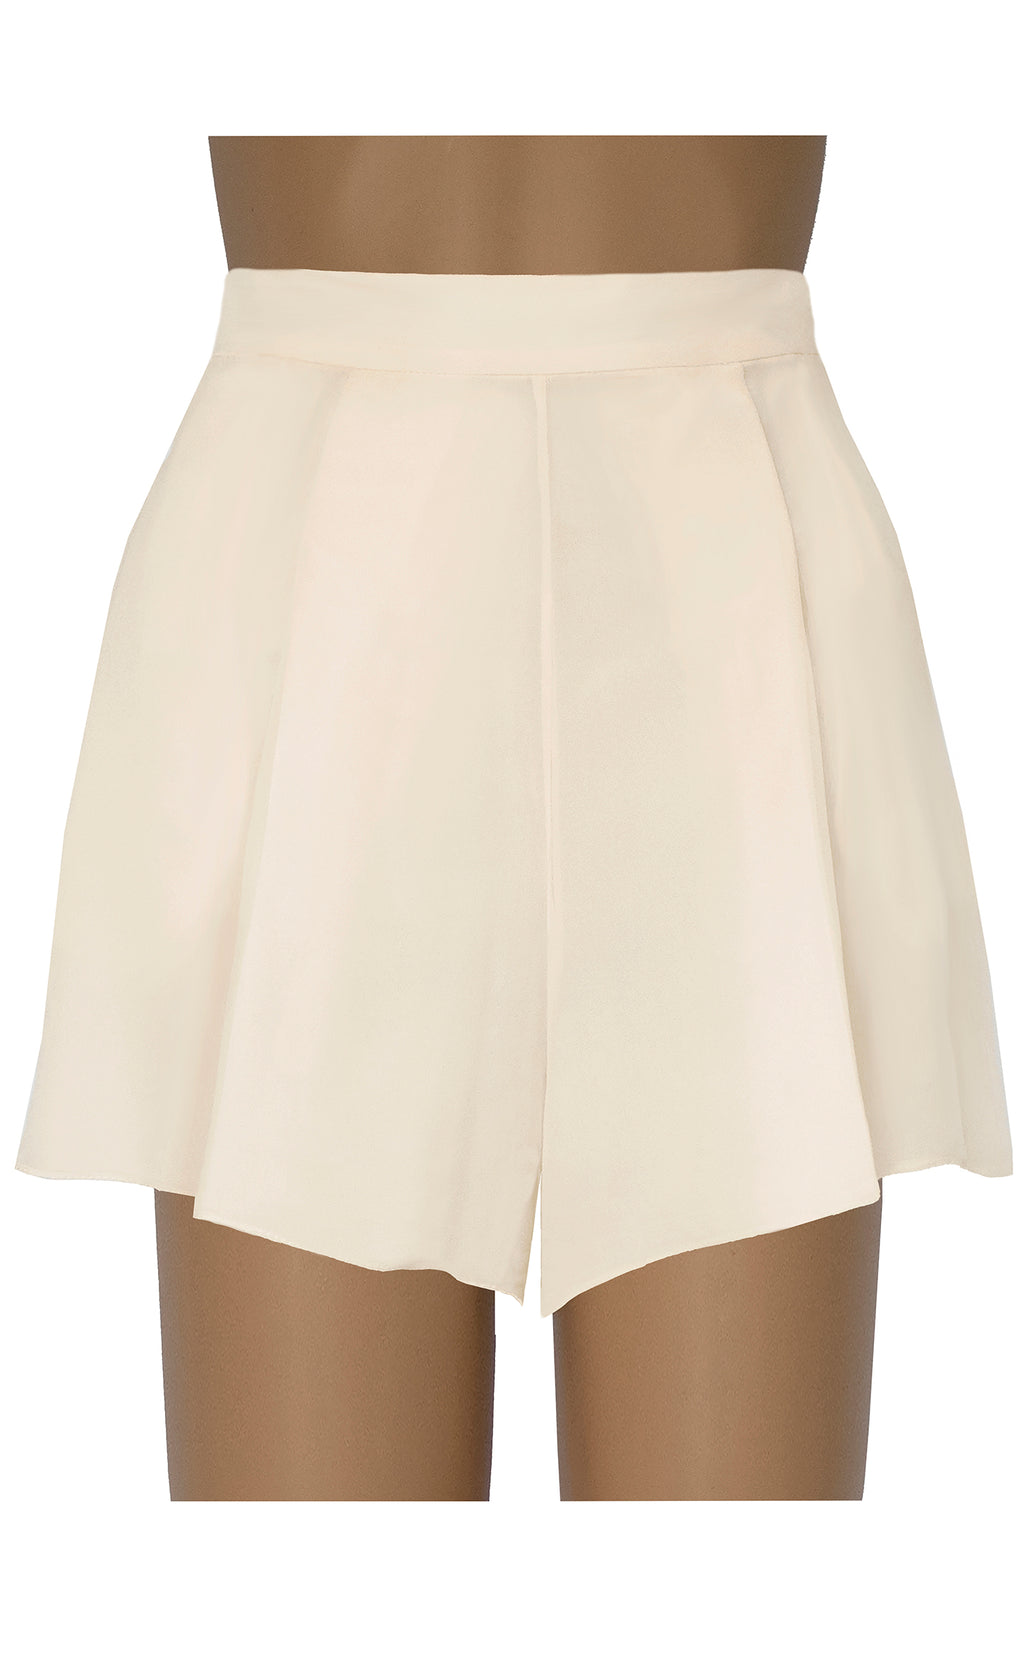 Lola Kick-Pleat Short - KxLNewYork